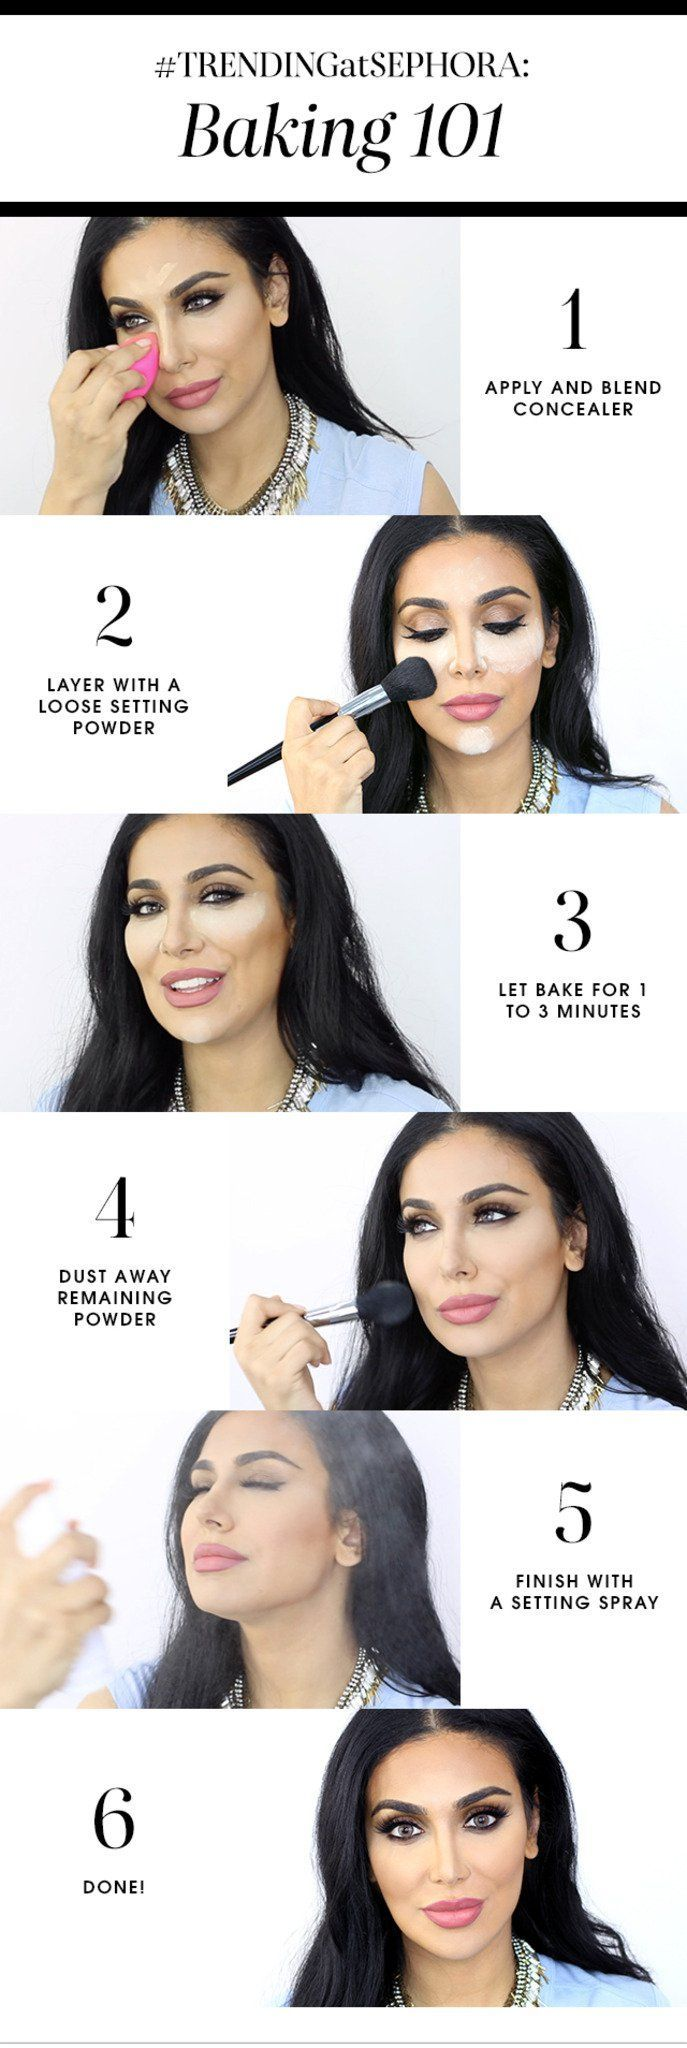 Baking 101: A Trend In Makeup Tutorials You Need To Know